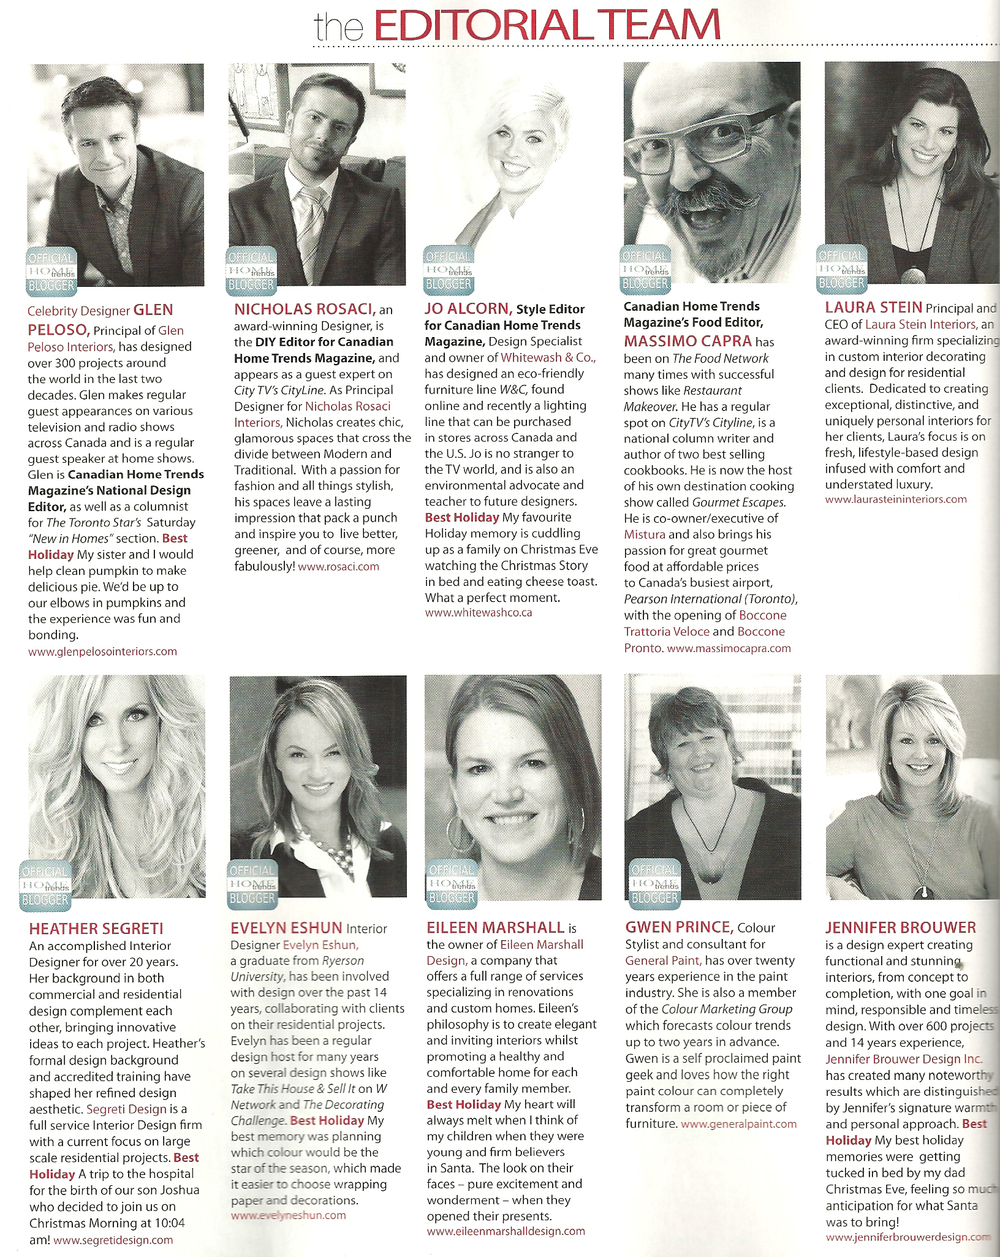 Canadian Home Trends Autumn 2013 Editorla Team.jpg